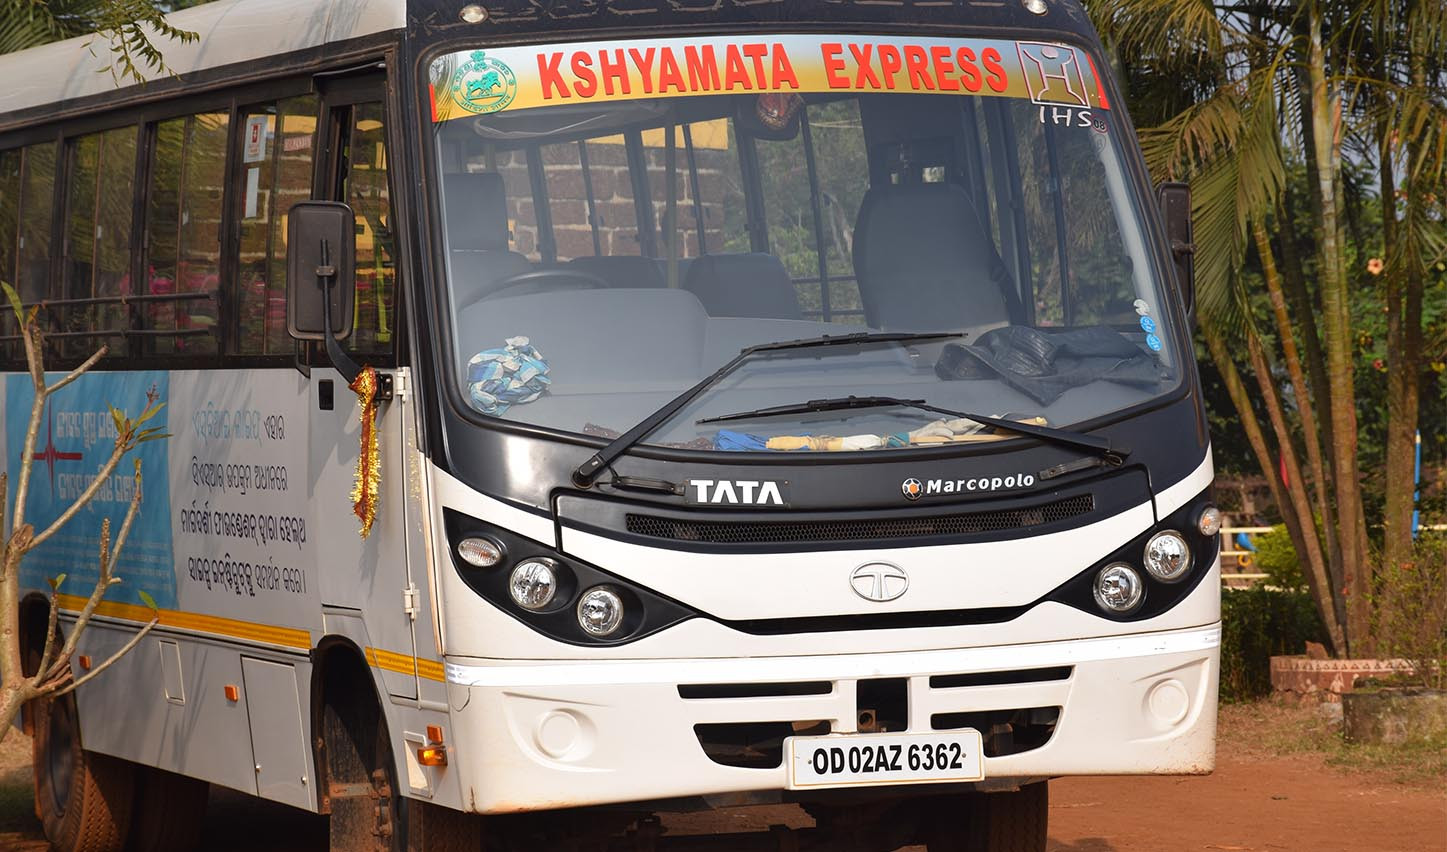 Kshyamata Express - Reaching out the vulnerable